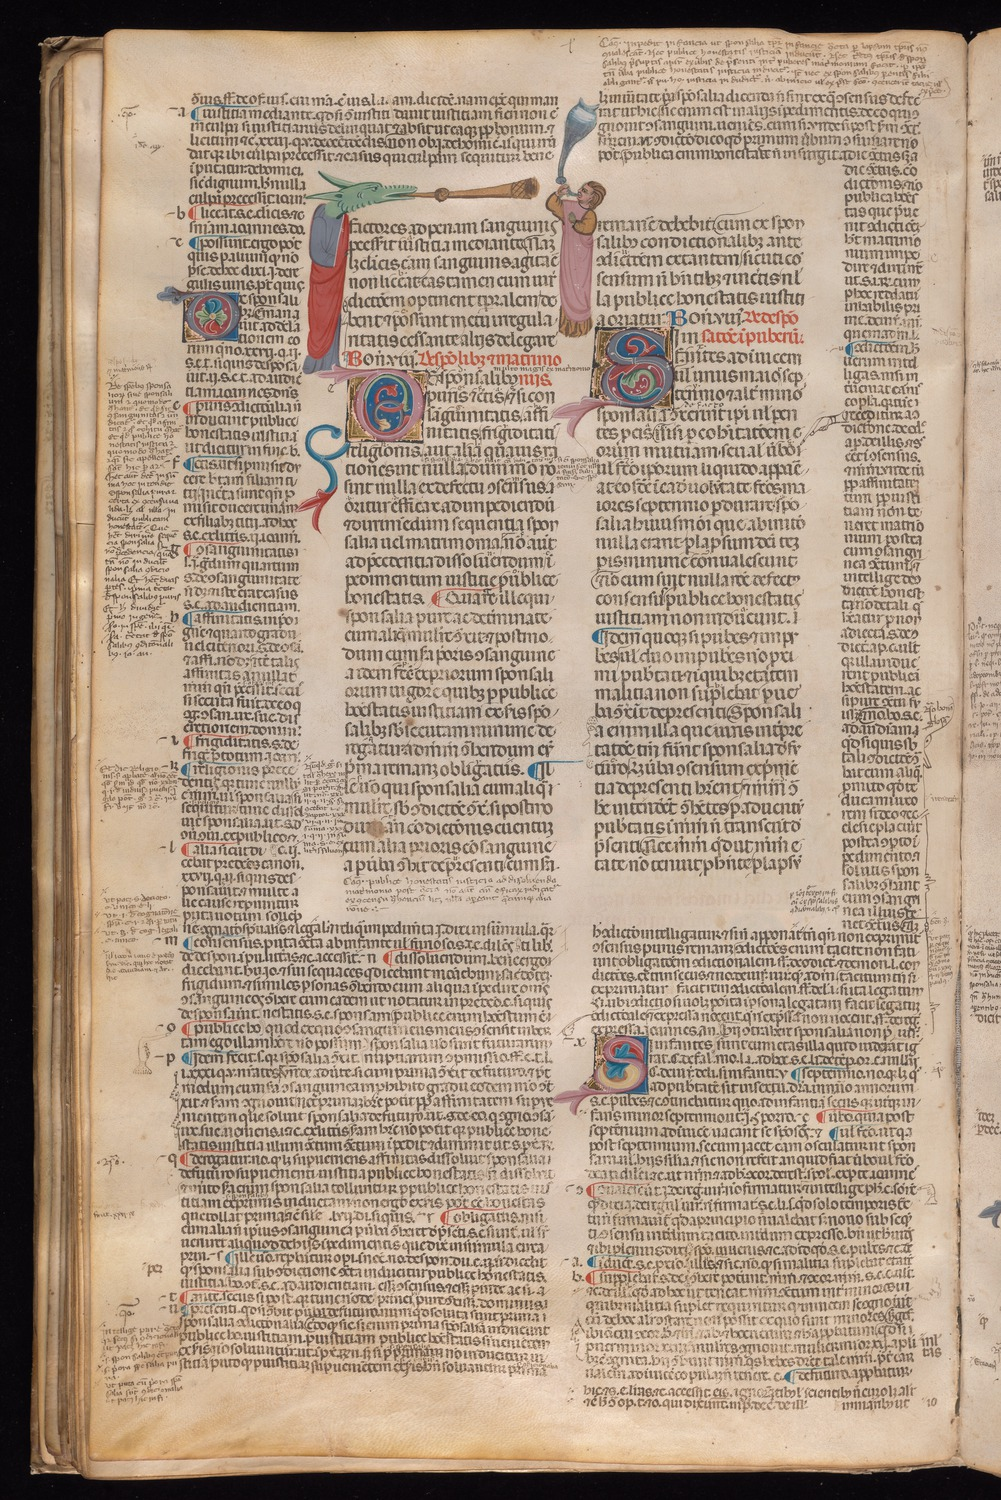 31 Beinecke Marston MS 155 (color)